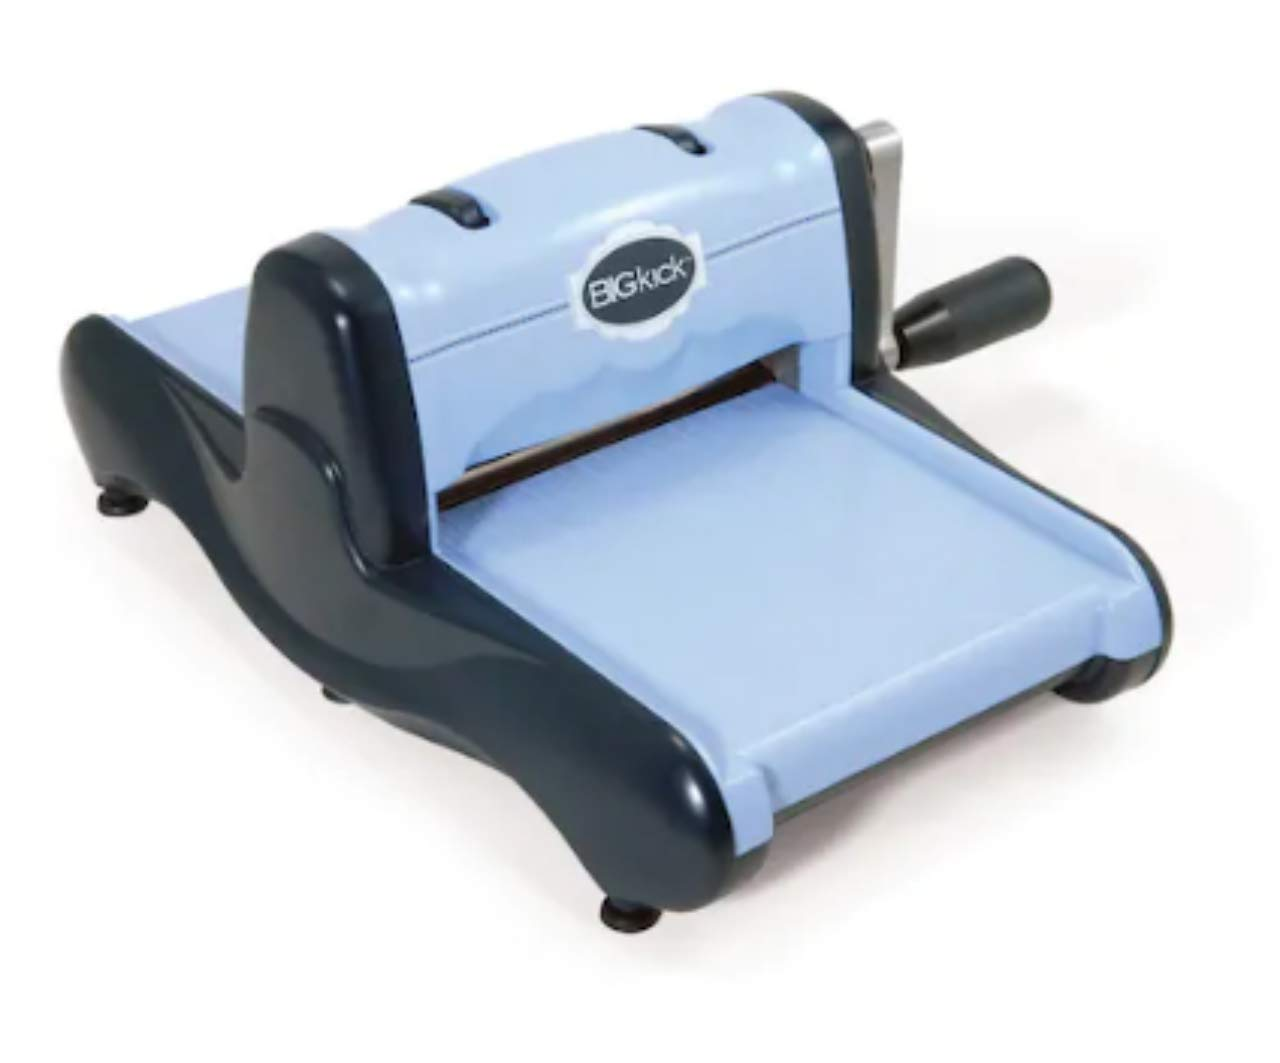 Sizzix Shape Cut and Embossing Machine by Sissix